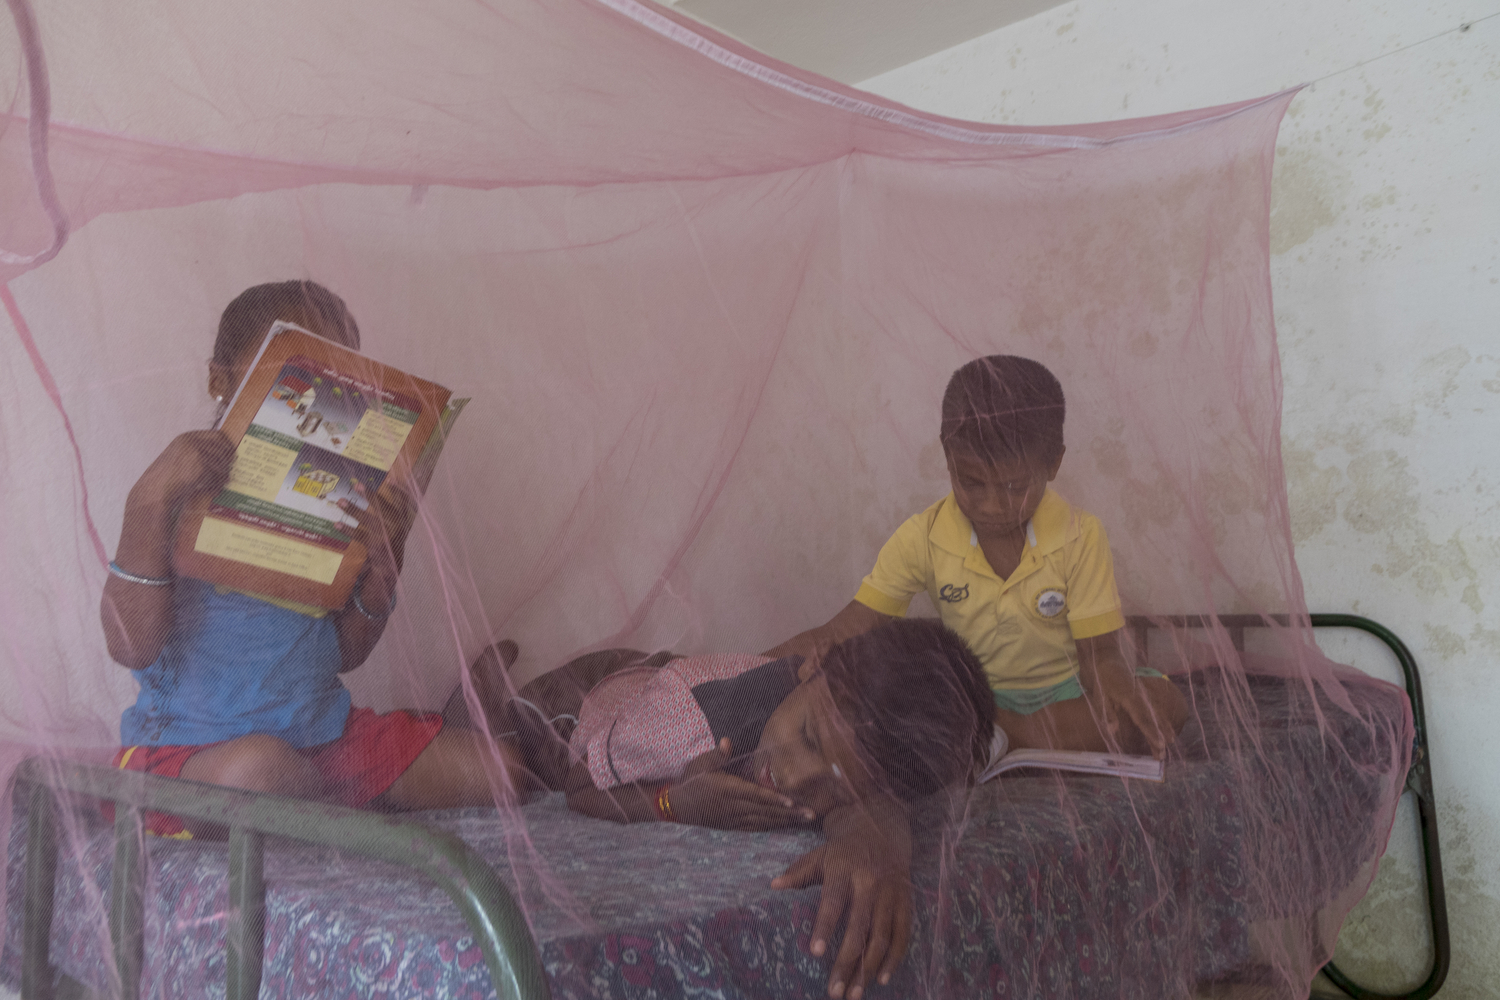 Karthika. S - Poornitha is reading her math book. Hari Haran wakes Shakthi while he reads his GK book. The pink colour net protects them from mosquitoes. They'll share their bed with each other in Chettipalayam, Coimbatore. They are brothers and sisters.